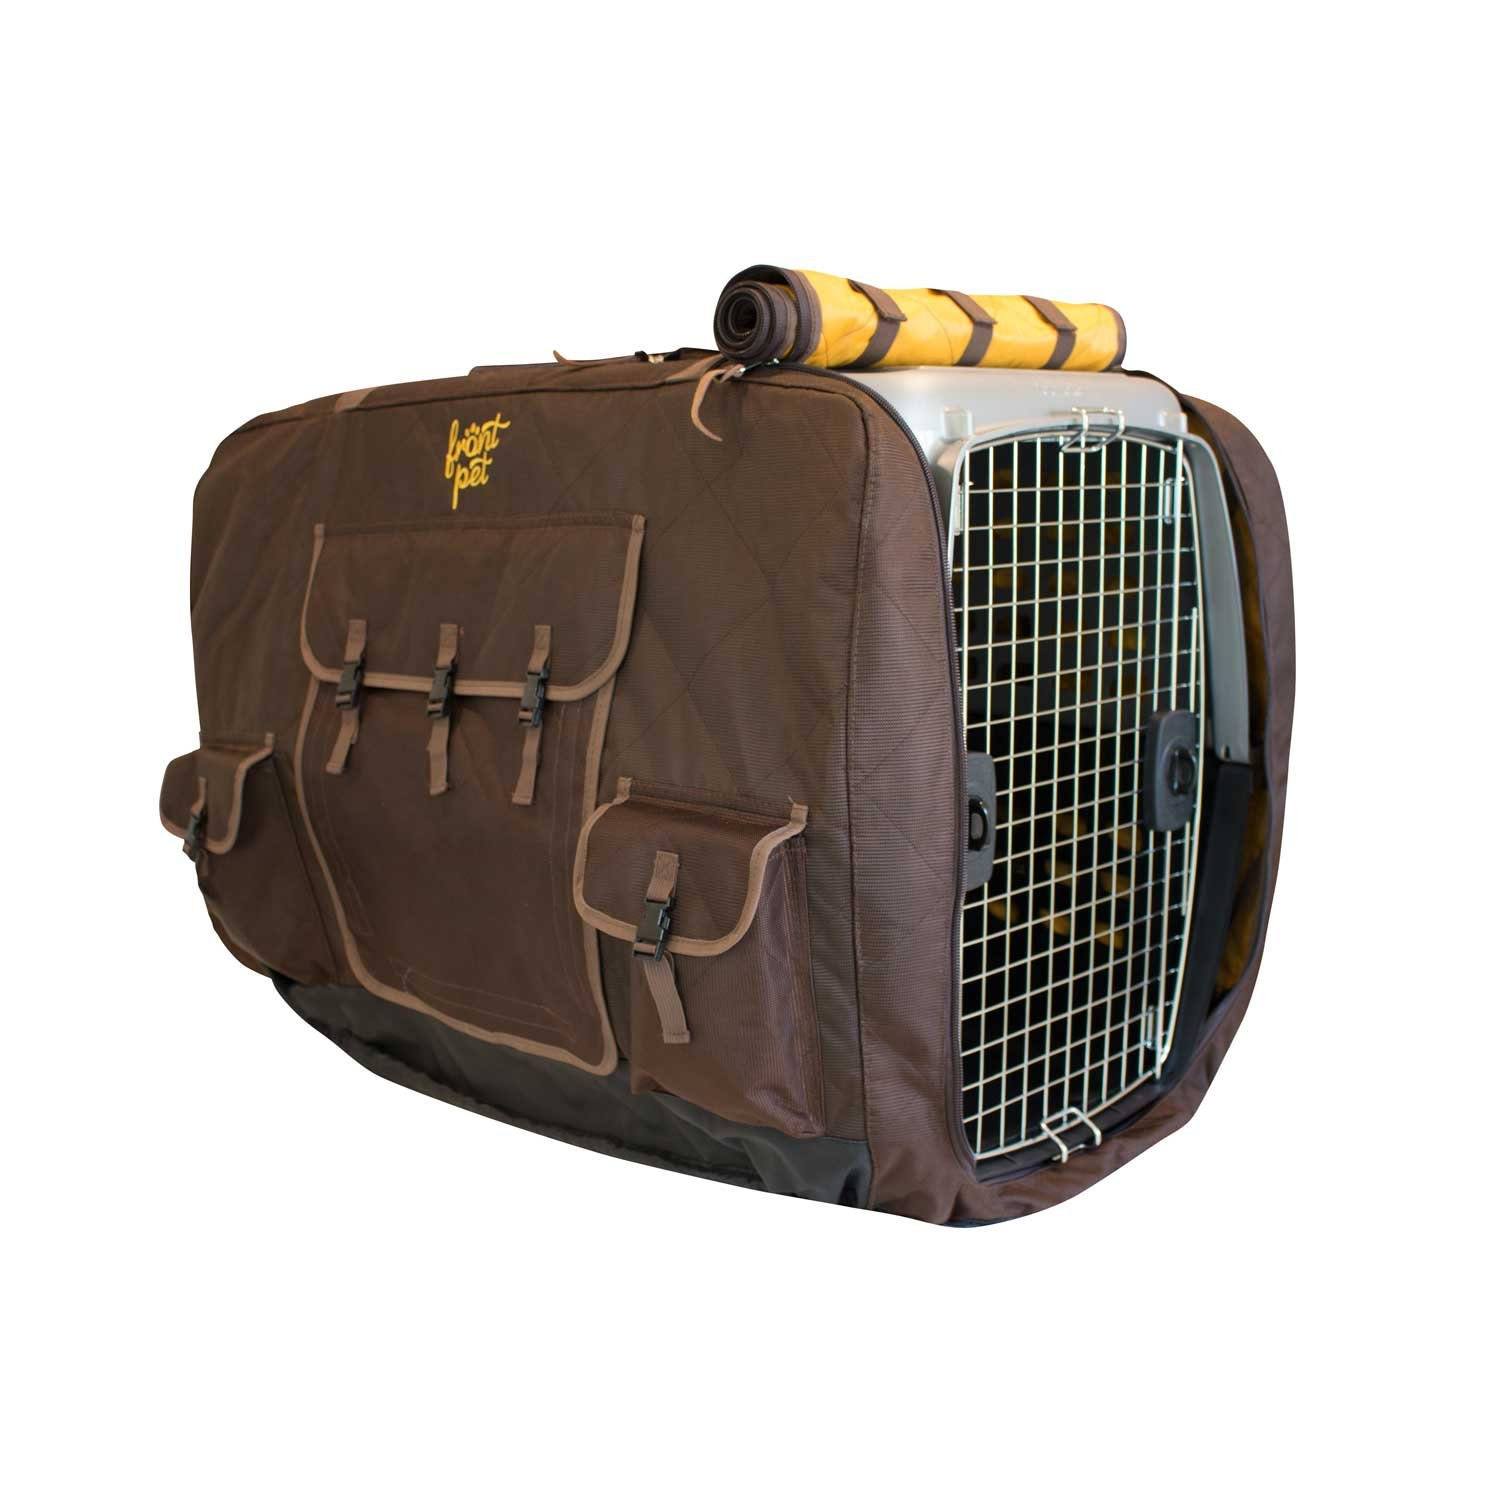 FrontPet Insulated Pet Crate Cover/Crate Cover/Dog Kennel Cover/Kennel Cover/Kennel Jacket